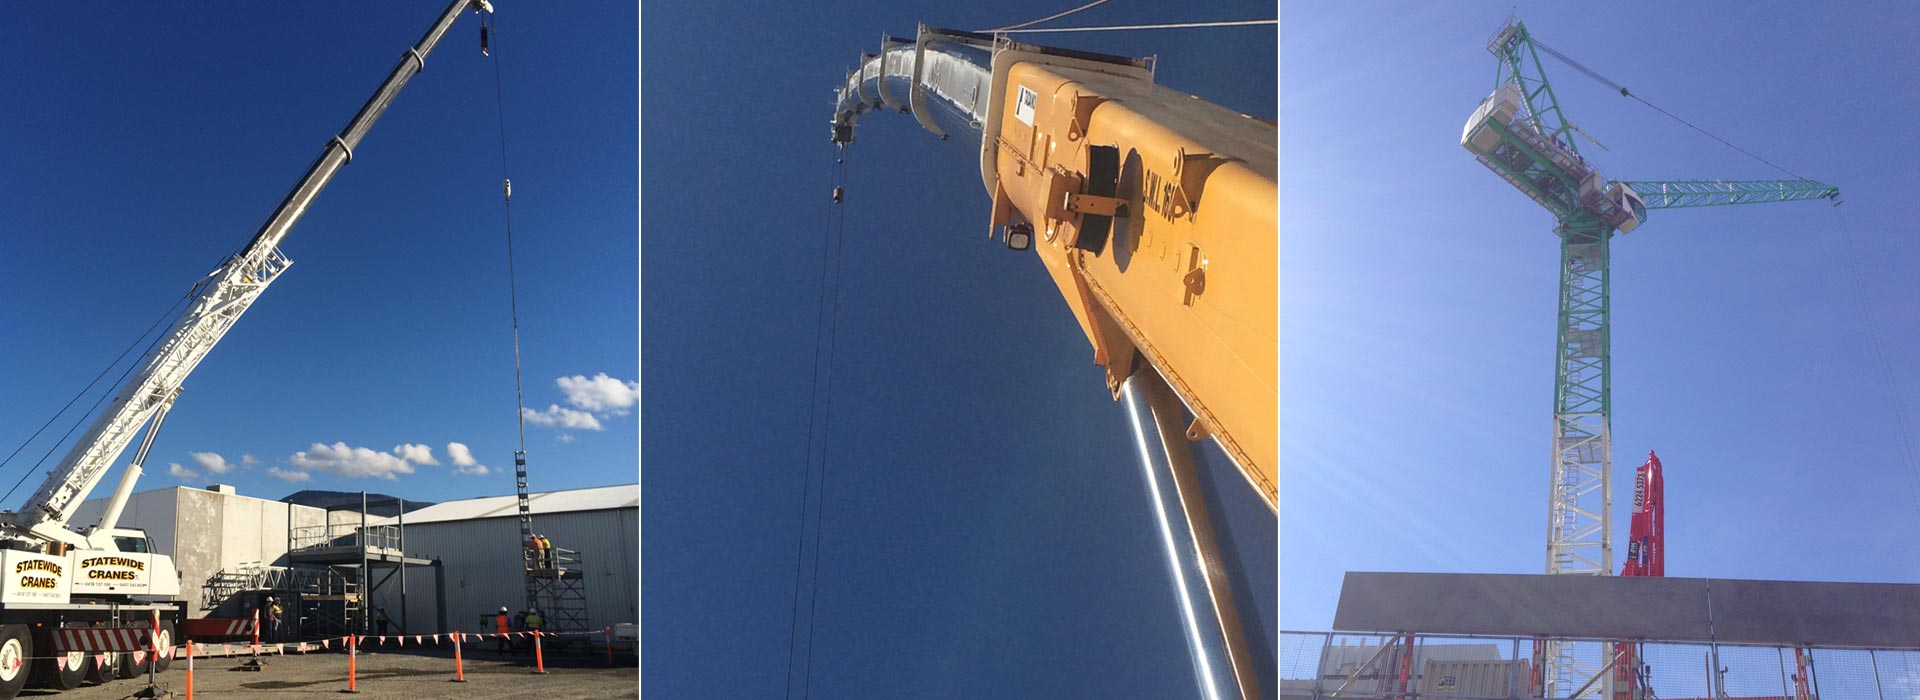 industrial licencing solutions cranes ant view